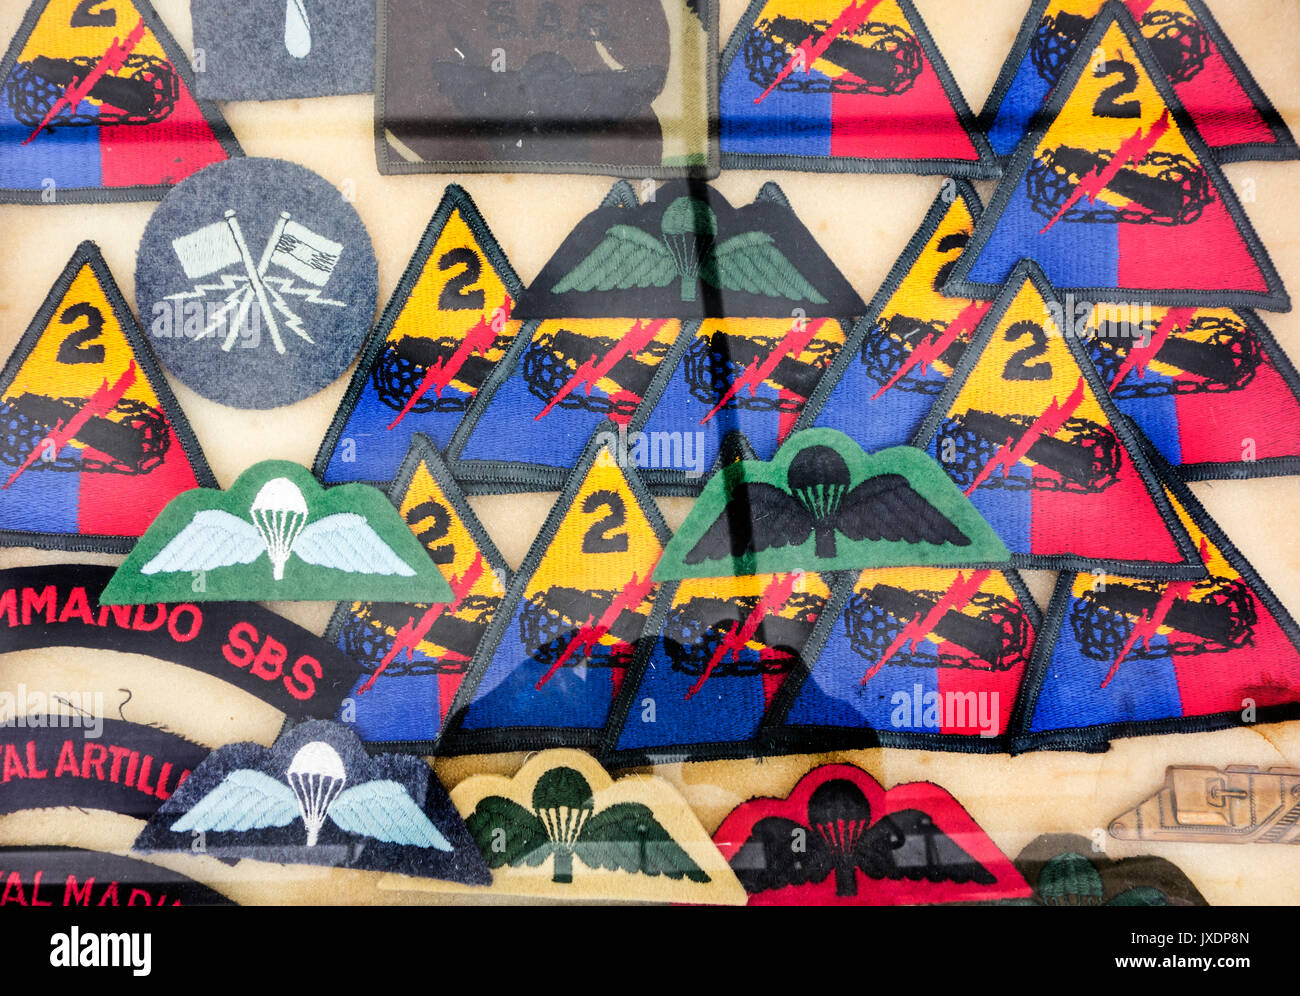 Assortment of military insignias for sale at militaria fair - Stock Image